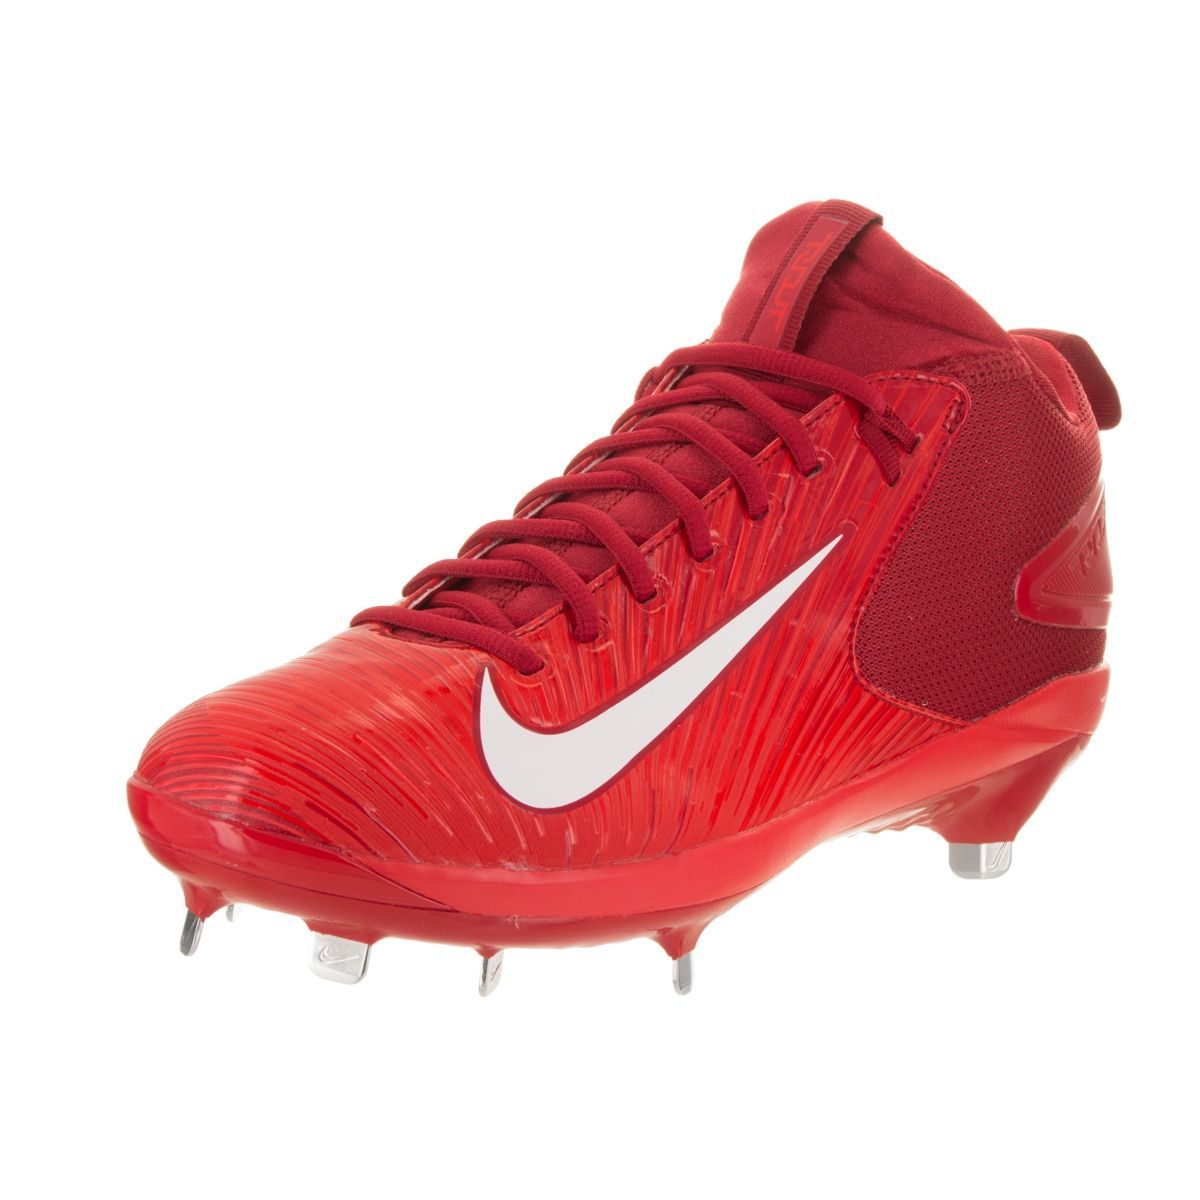 best loved 20af3 b4098 Nike Men s Trout 3 Pro Synthetic Baseball Cleats